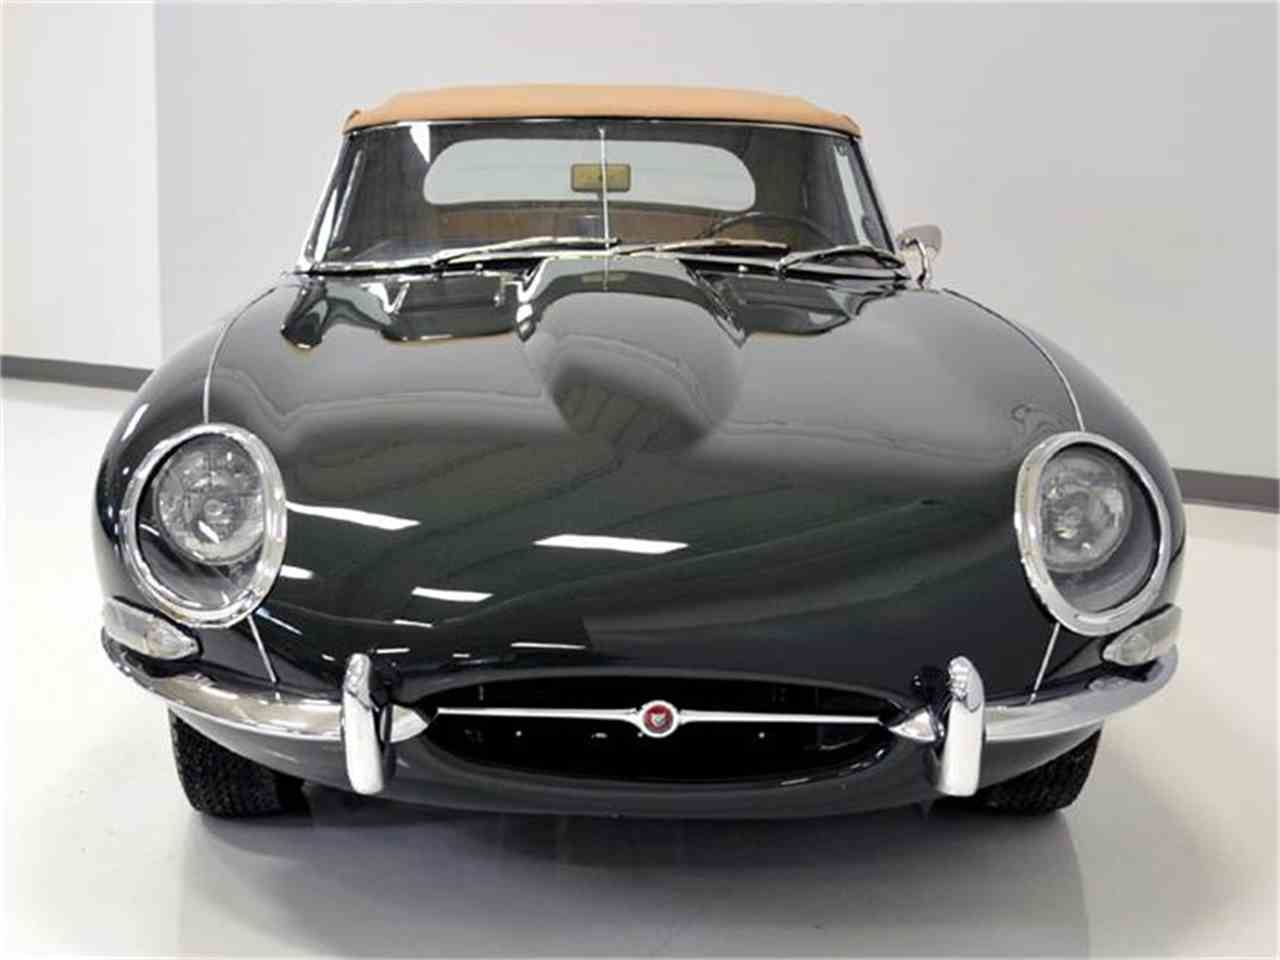 Large Picture of Classic 1963 Jaguar E-Type Offered by Harwood Motors, LTD. - GI64